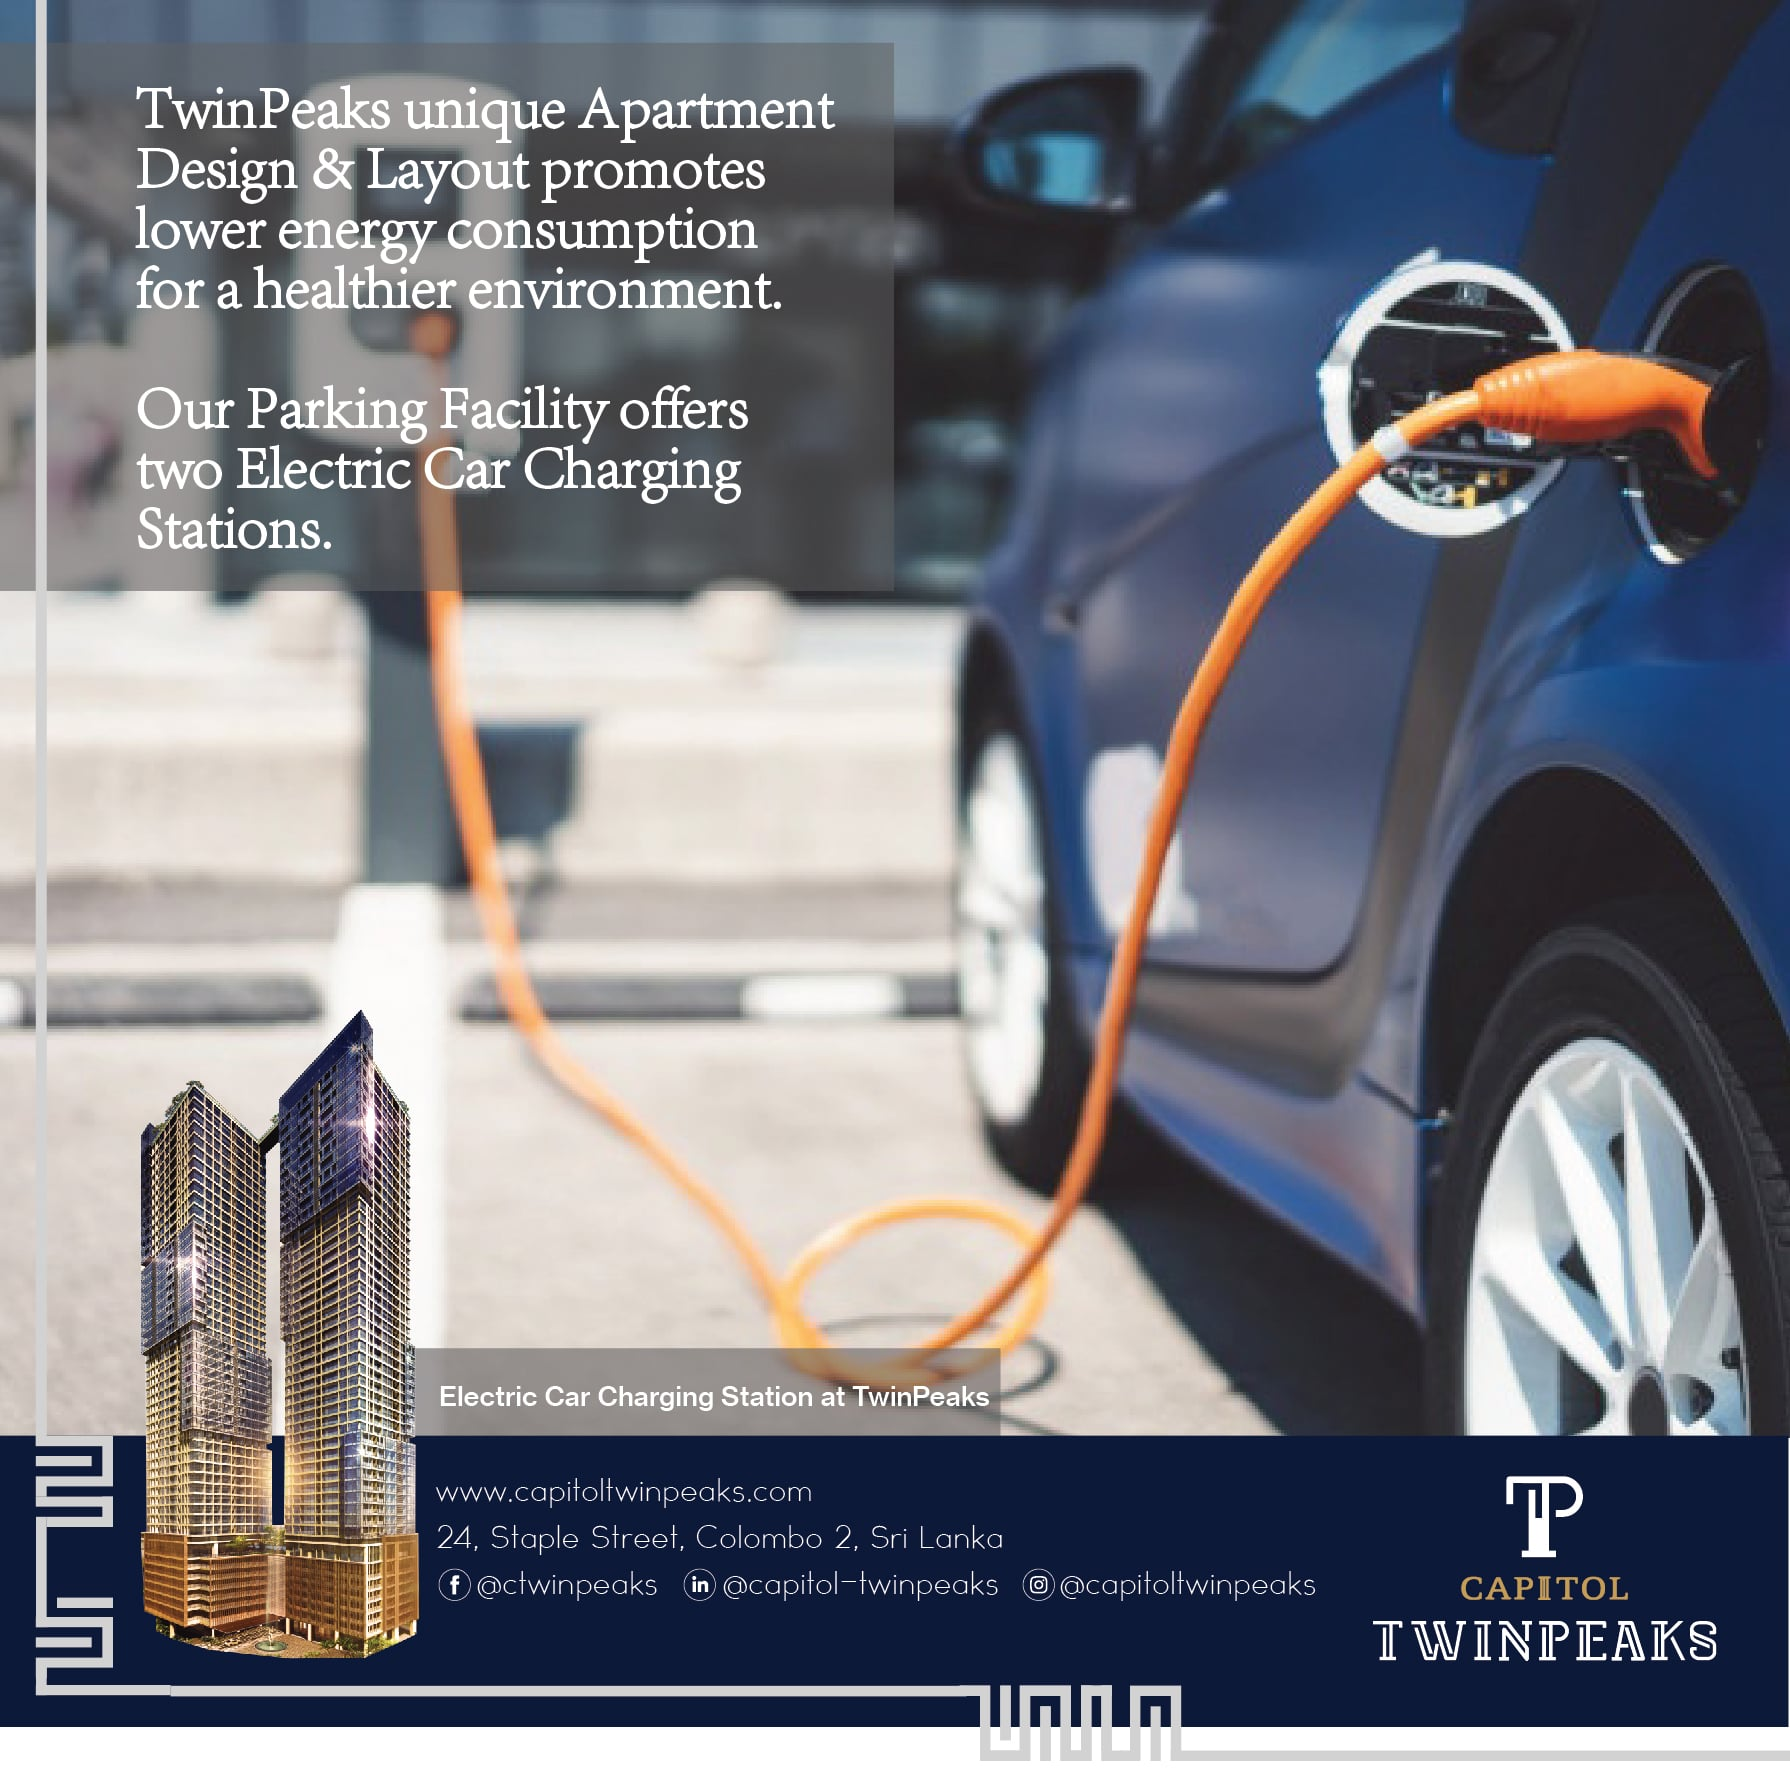 Electric Charging Port at Capitol TwinPeaks Colombo